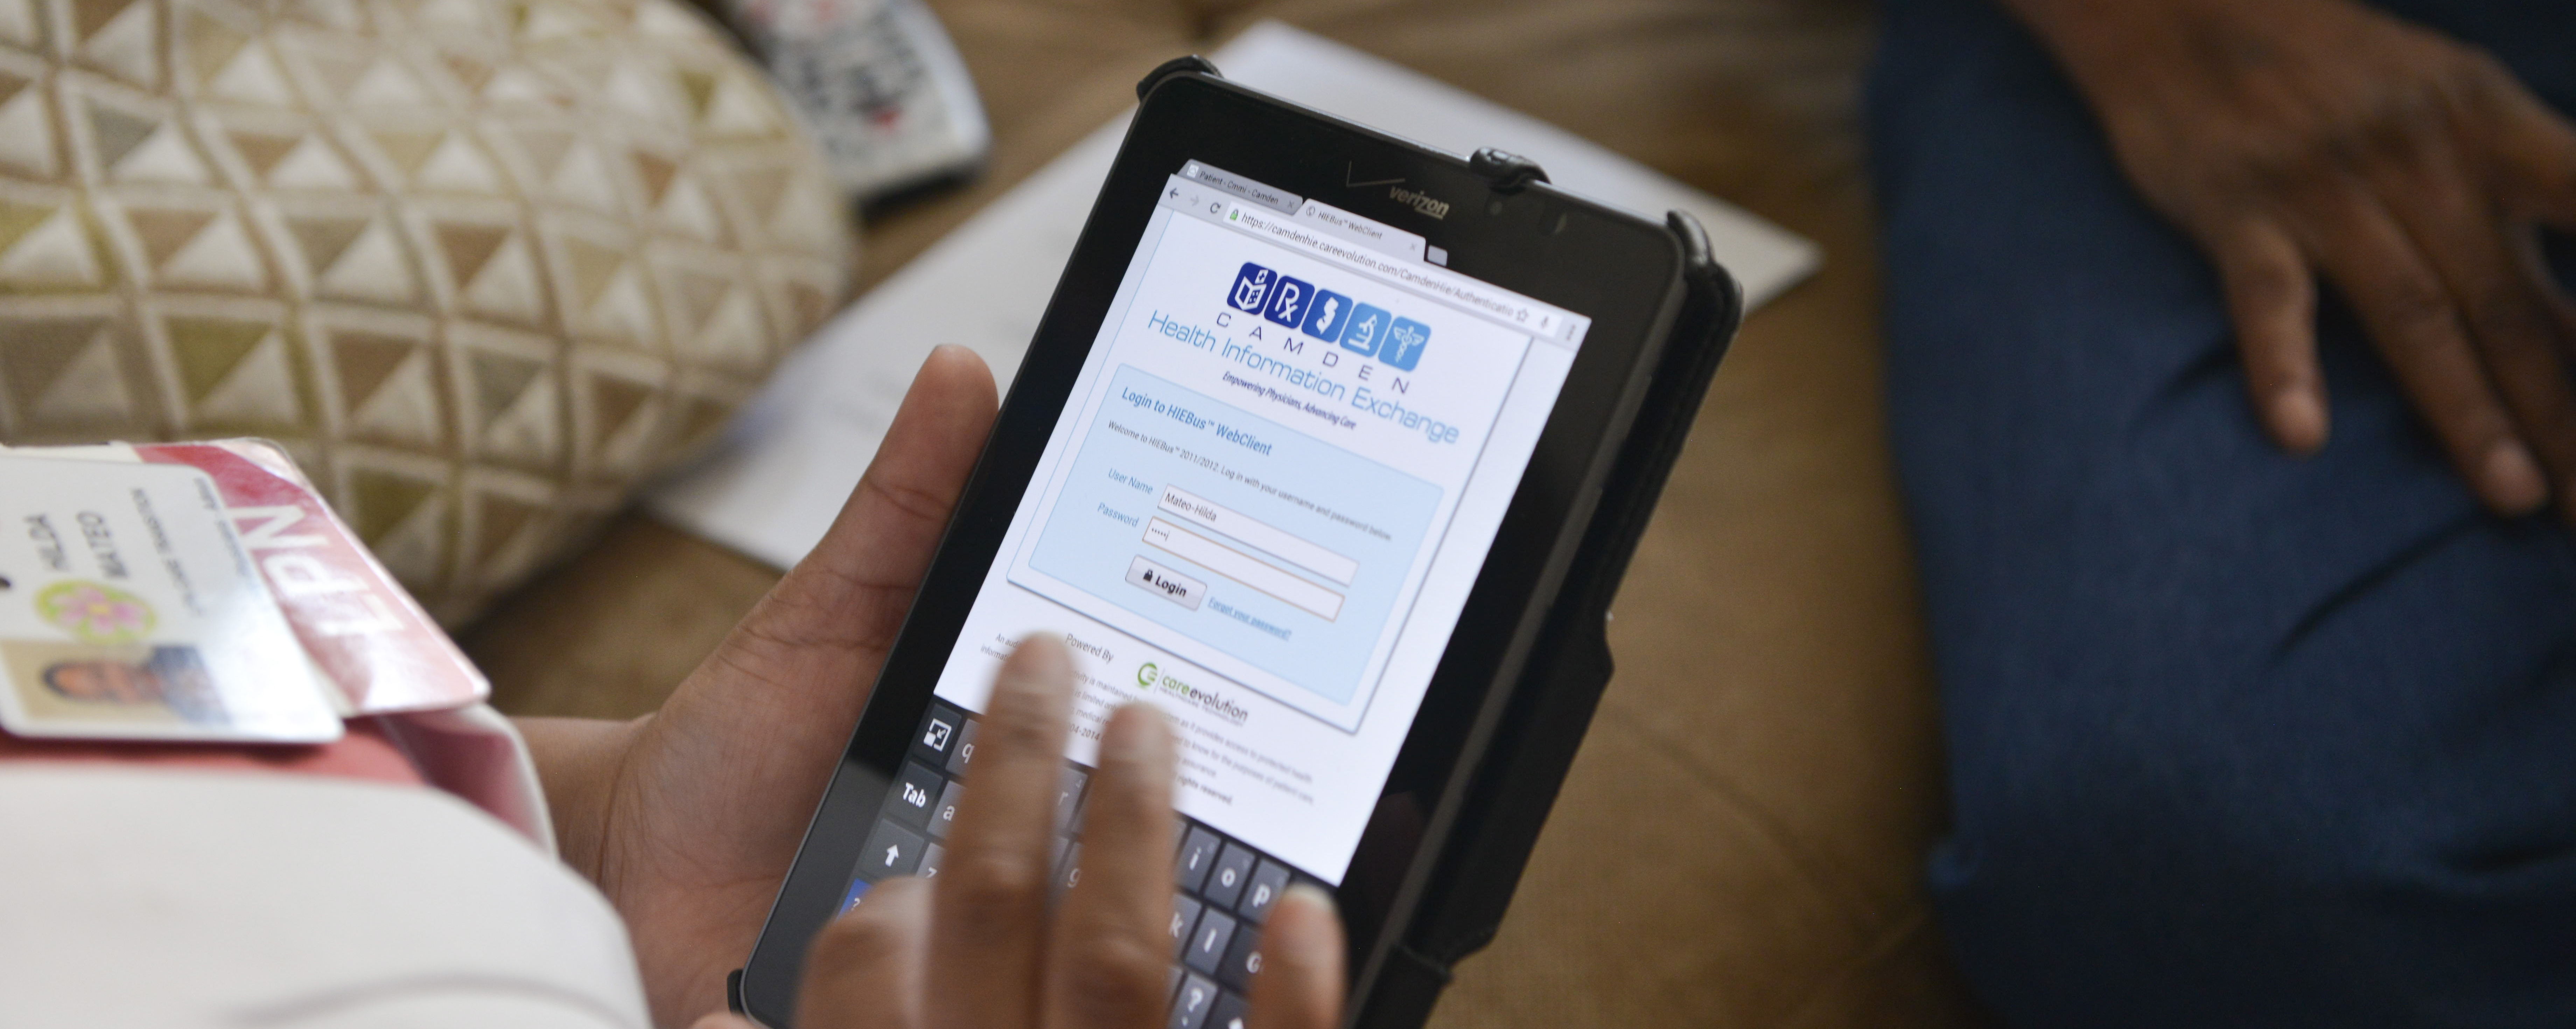 A Camden Coalition care team member demonstrates using our Health Information Exchange in the field